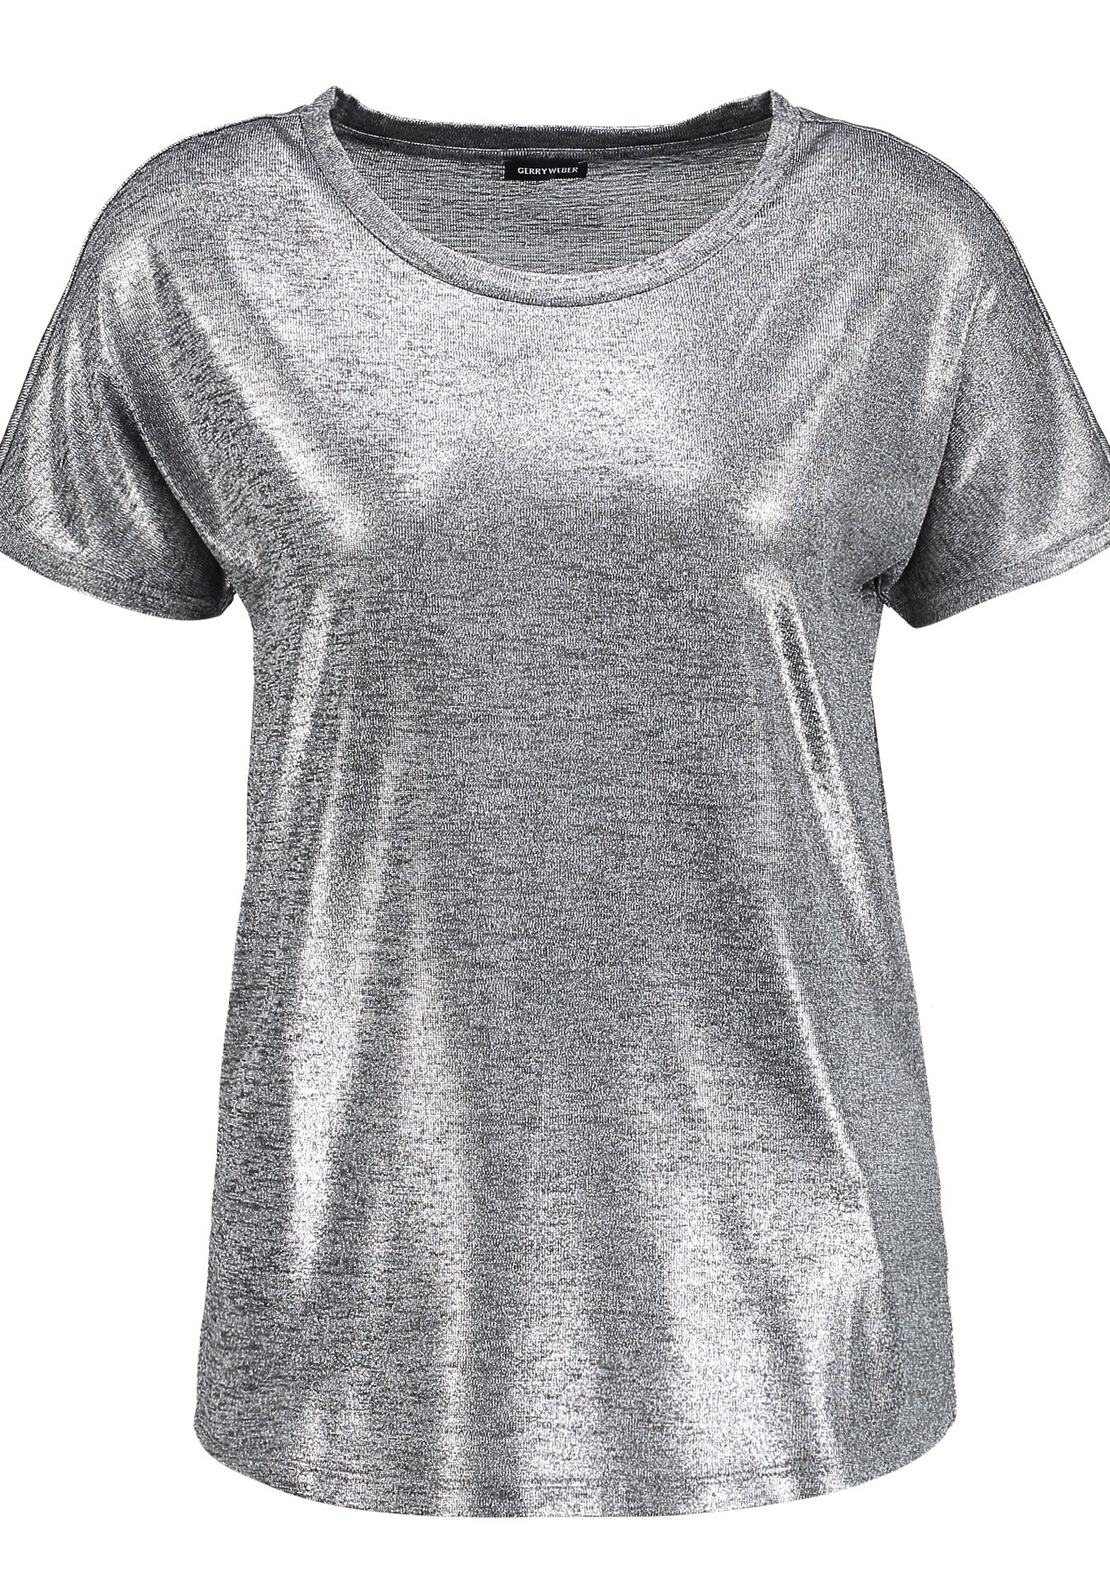 Gerry Weber Metallic Short Sleeve T-Shirt, Silver